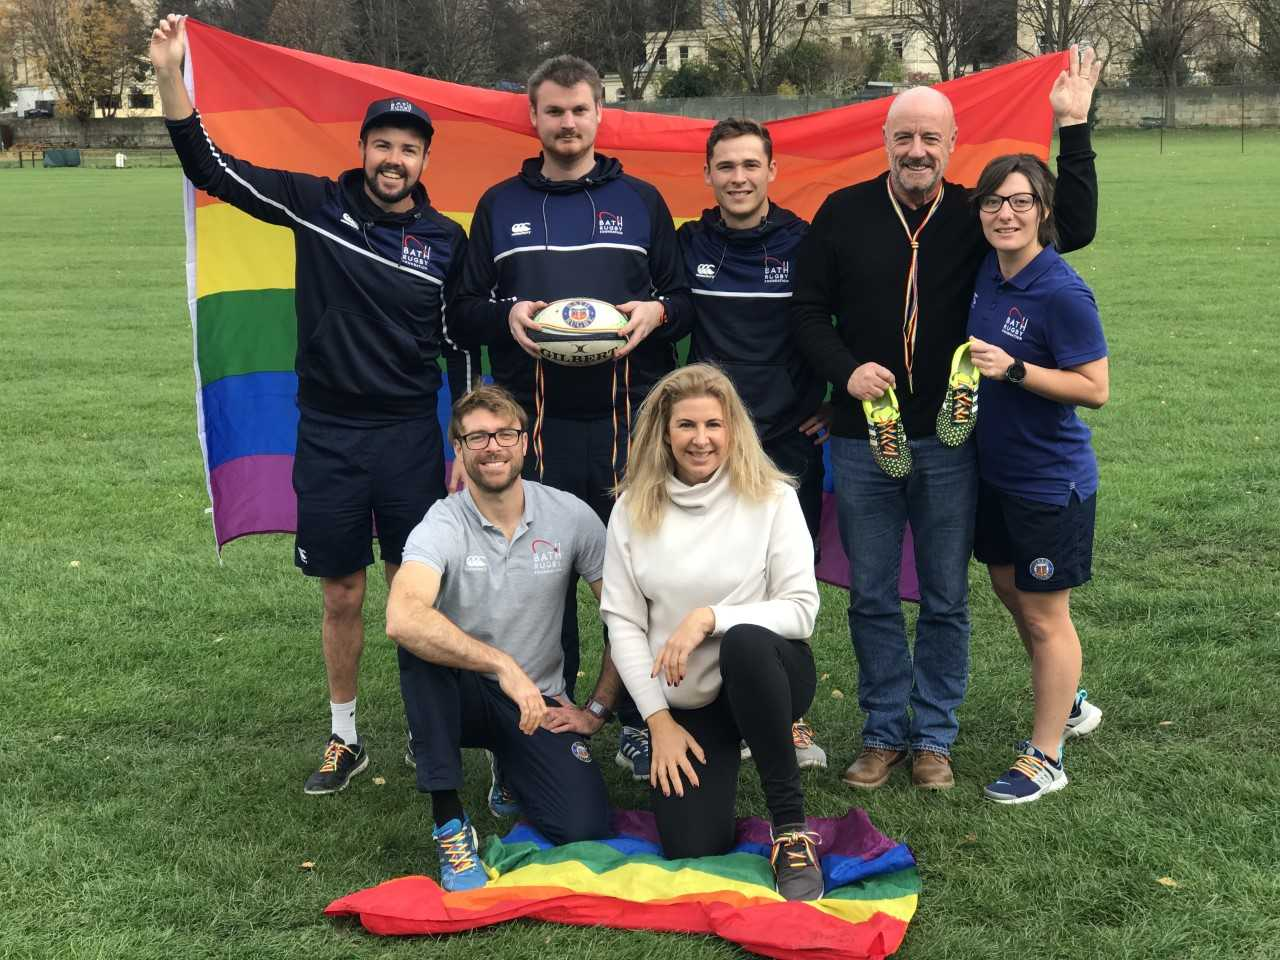 Bath Rugby Foundation: The Rainbow Laces campaign